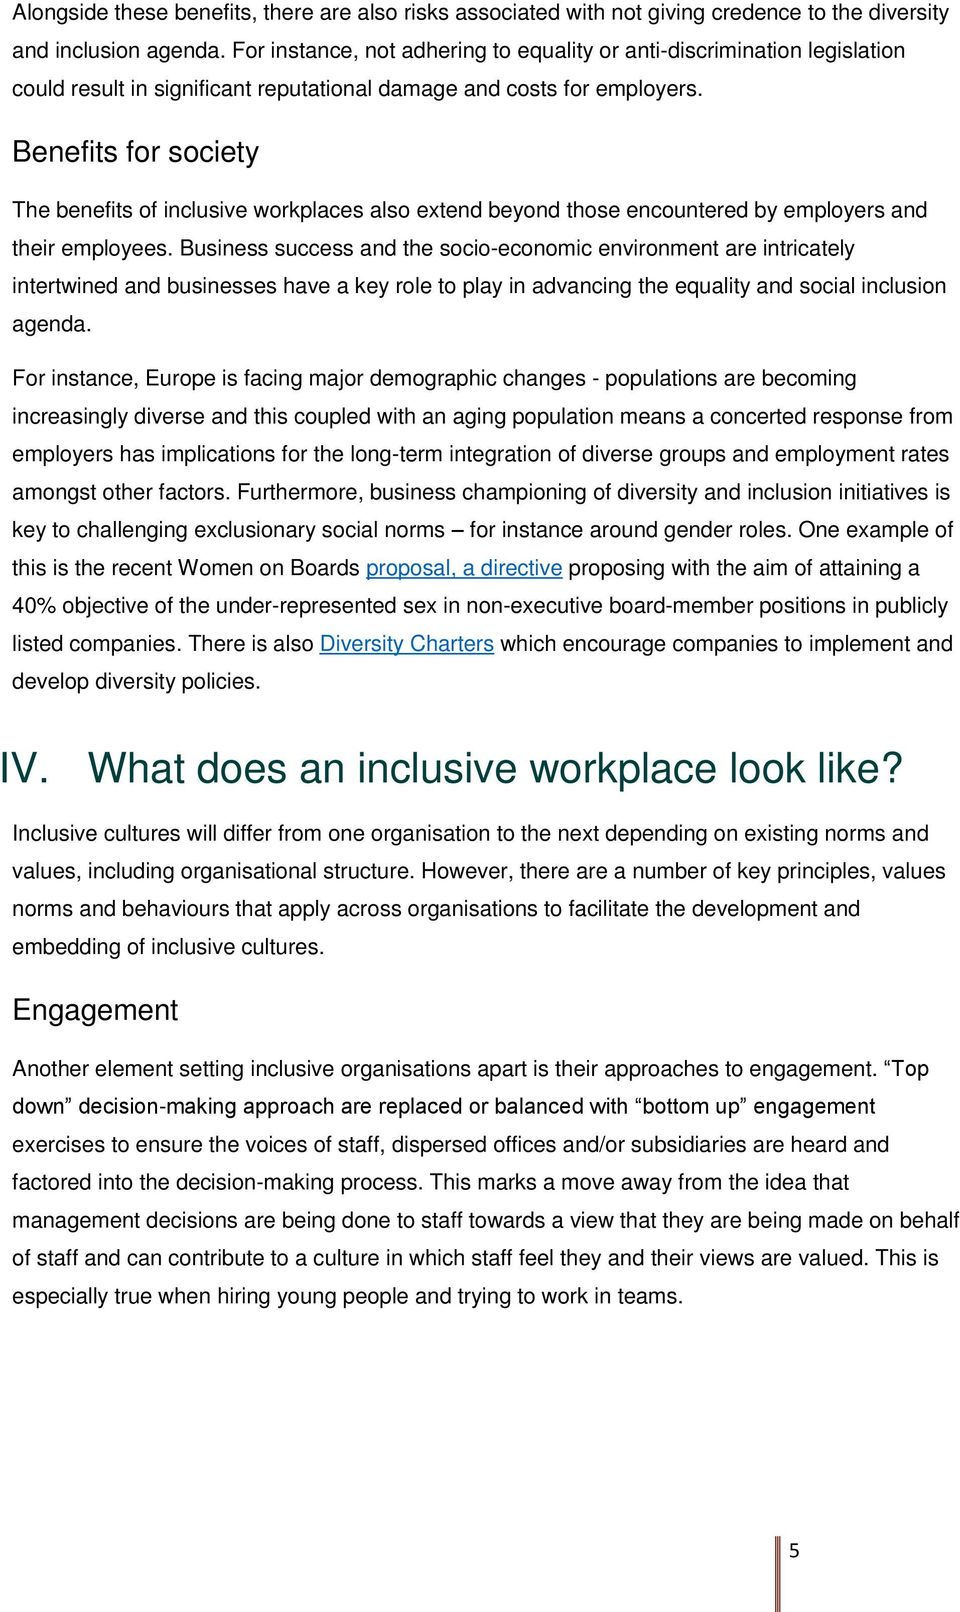 Benefits for society The benefits of inclusive workplaces also extend beyond those encountered by employers and their employees.